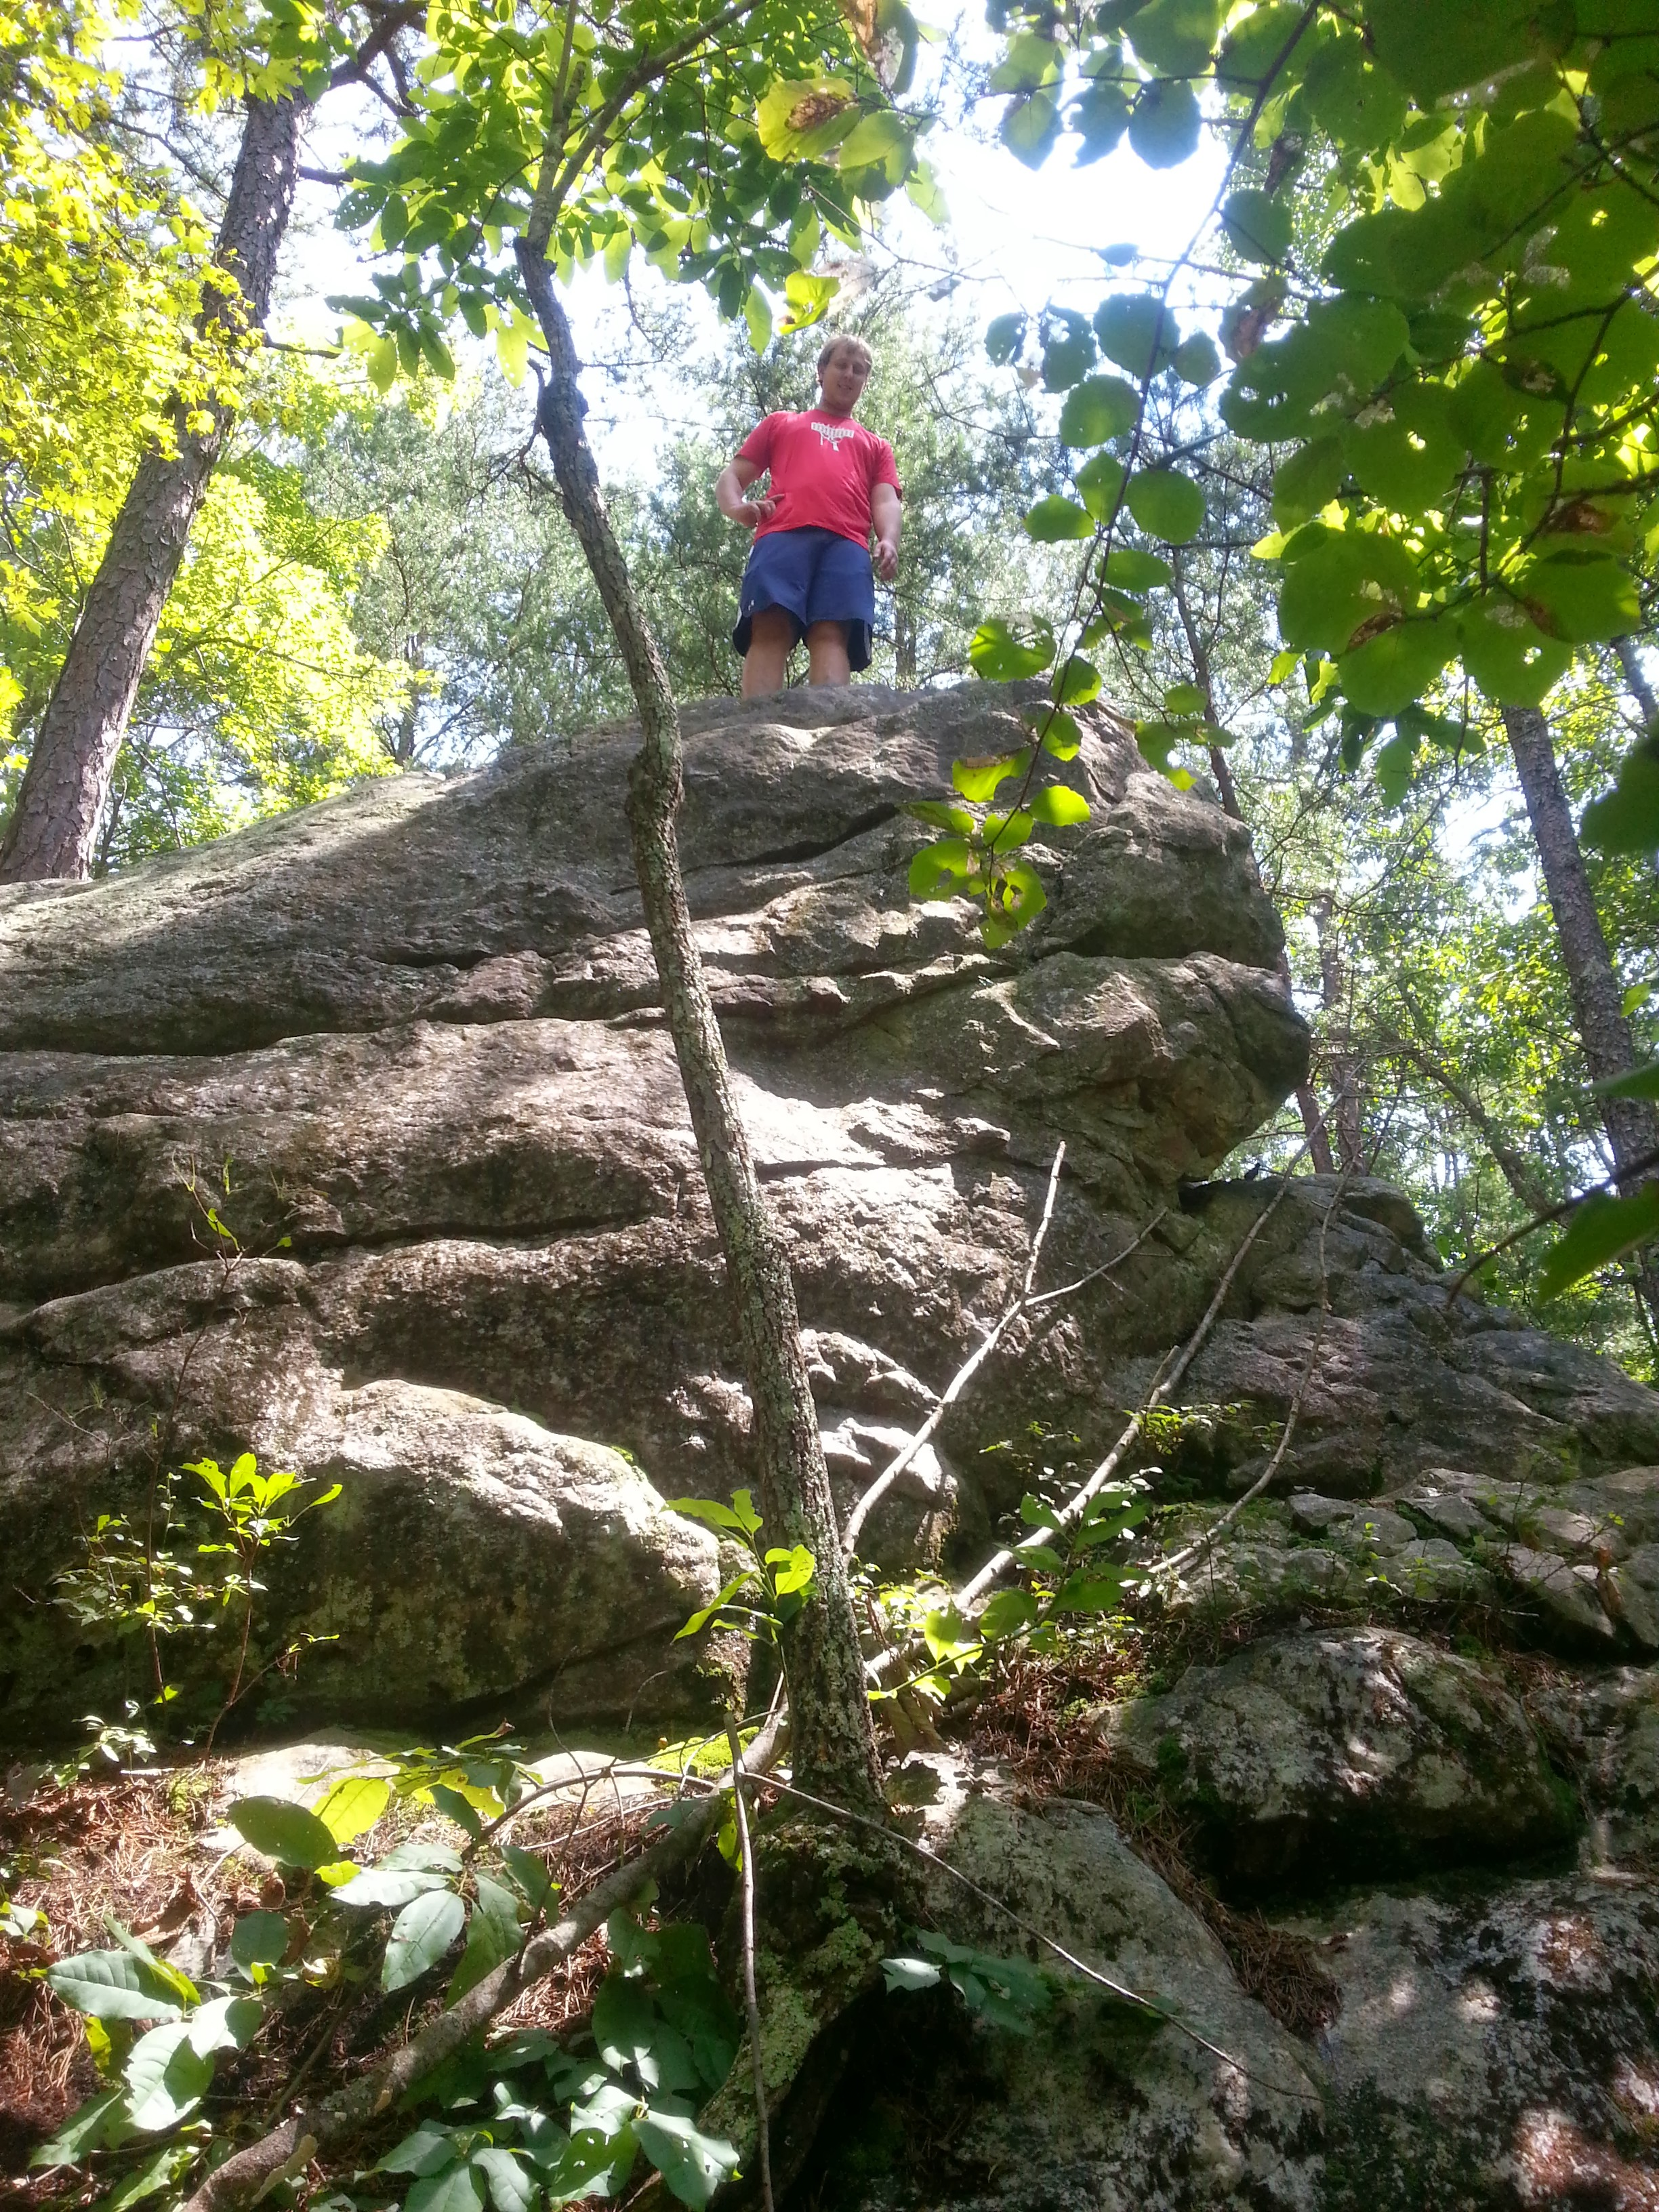 McCrae explored some rock formations next to the trail.